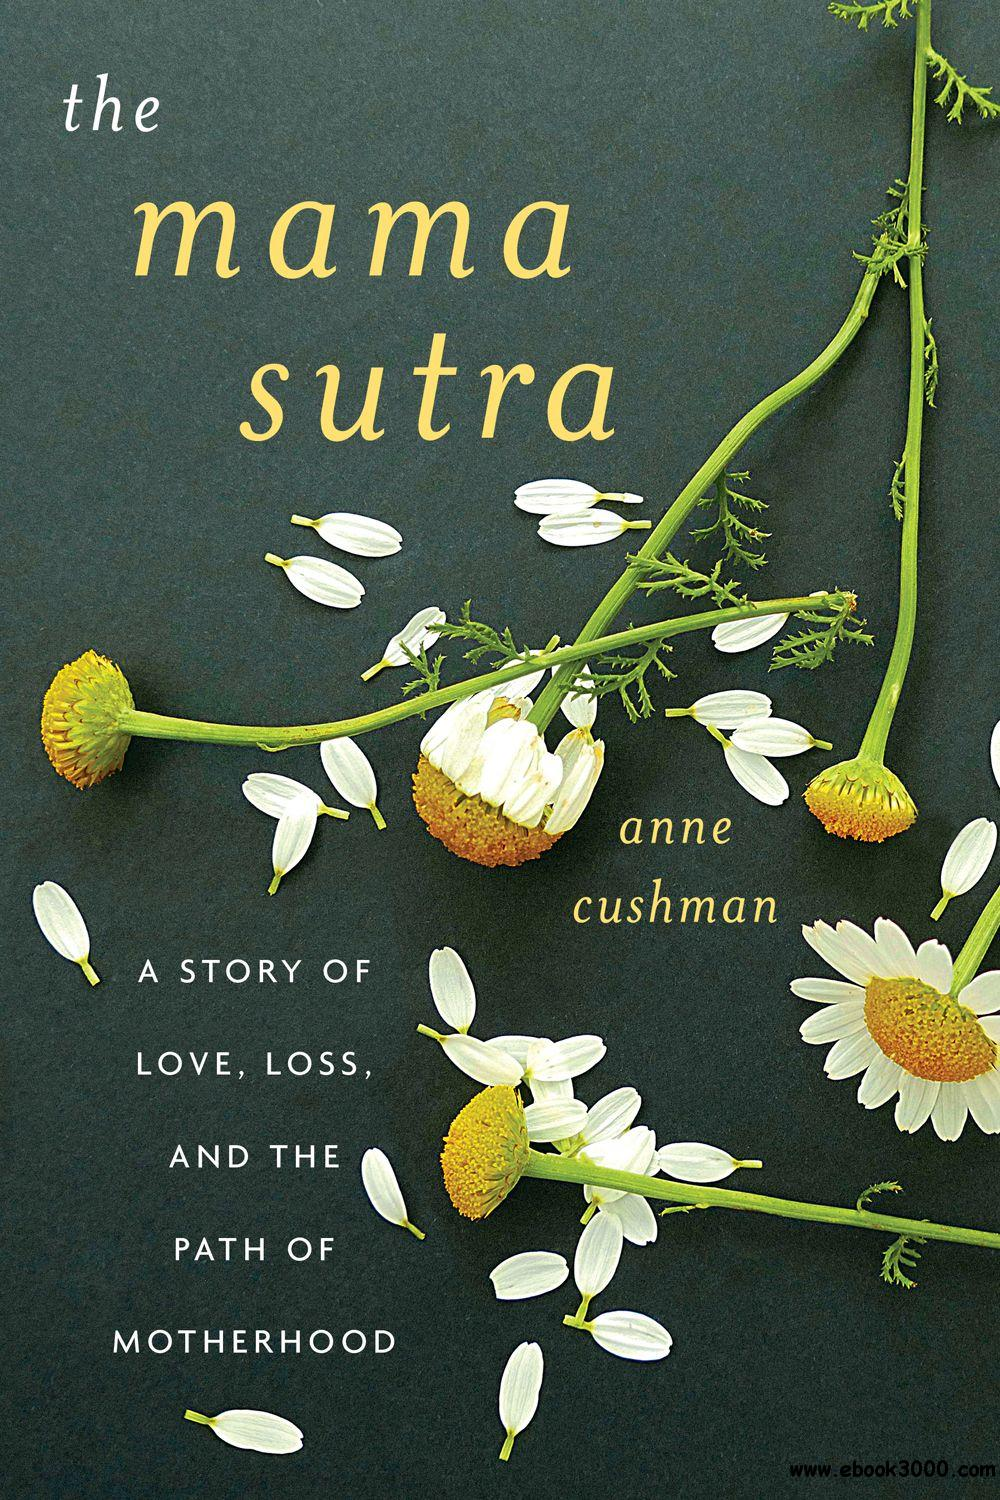 The Mama Sutra: A Story of Love, Loss, and the Path of Motherhood